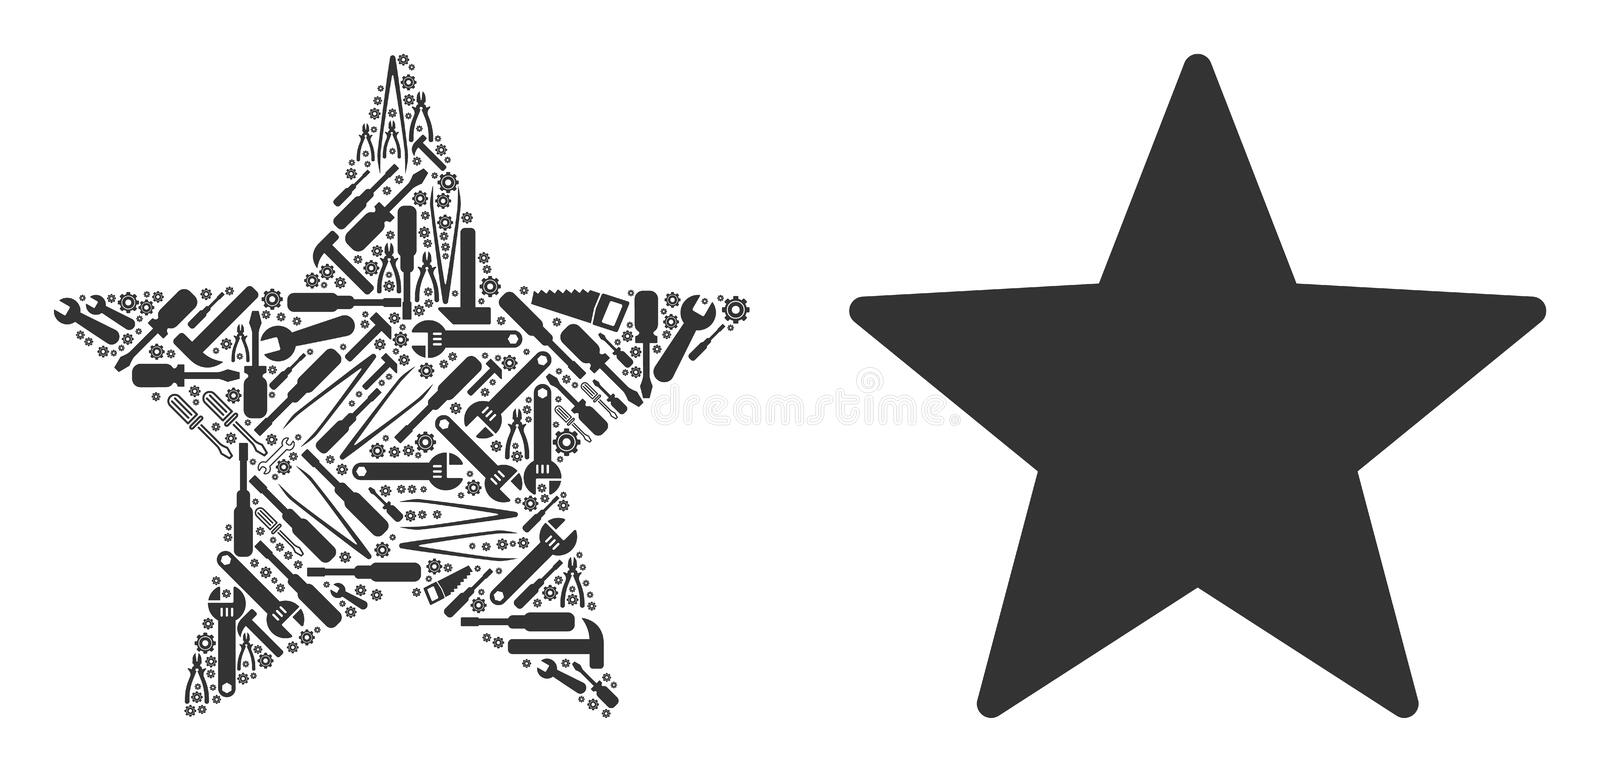 Fireworks Star Collage of Repair Tools royalty free illustration